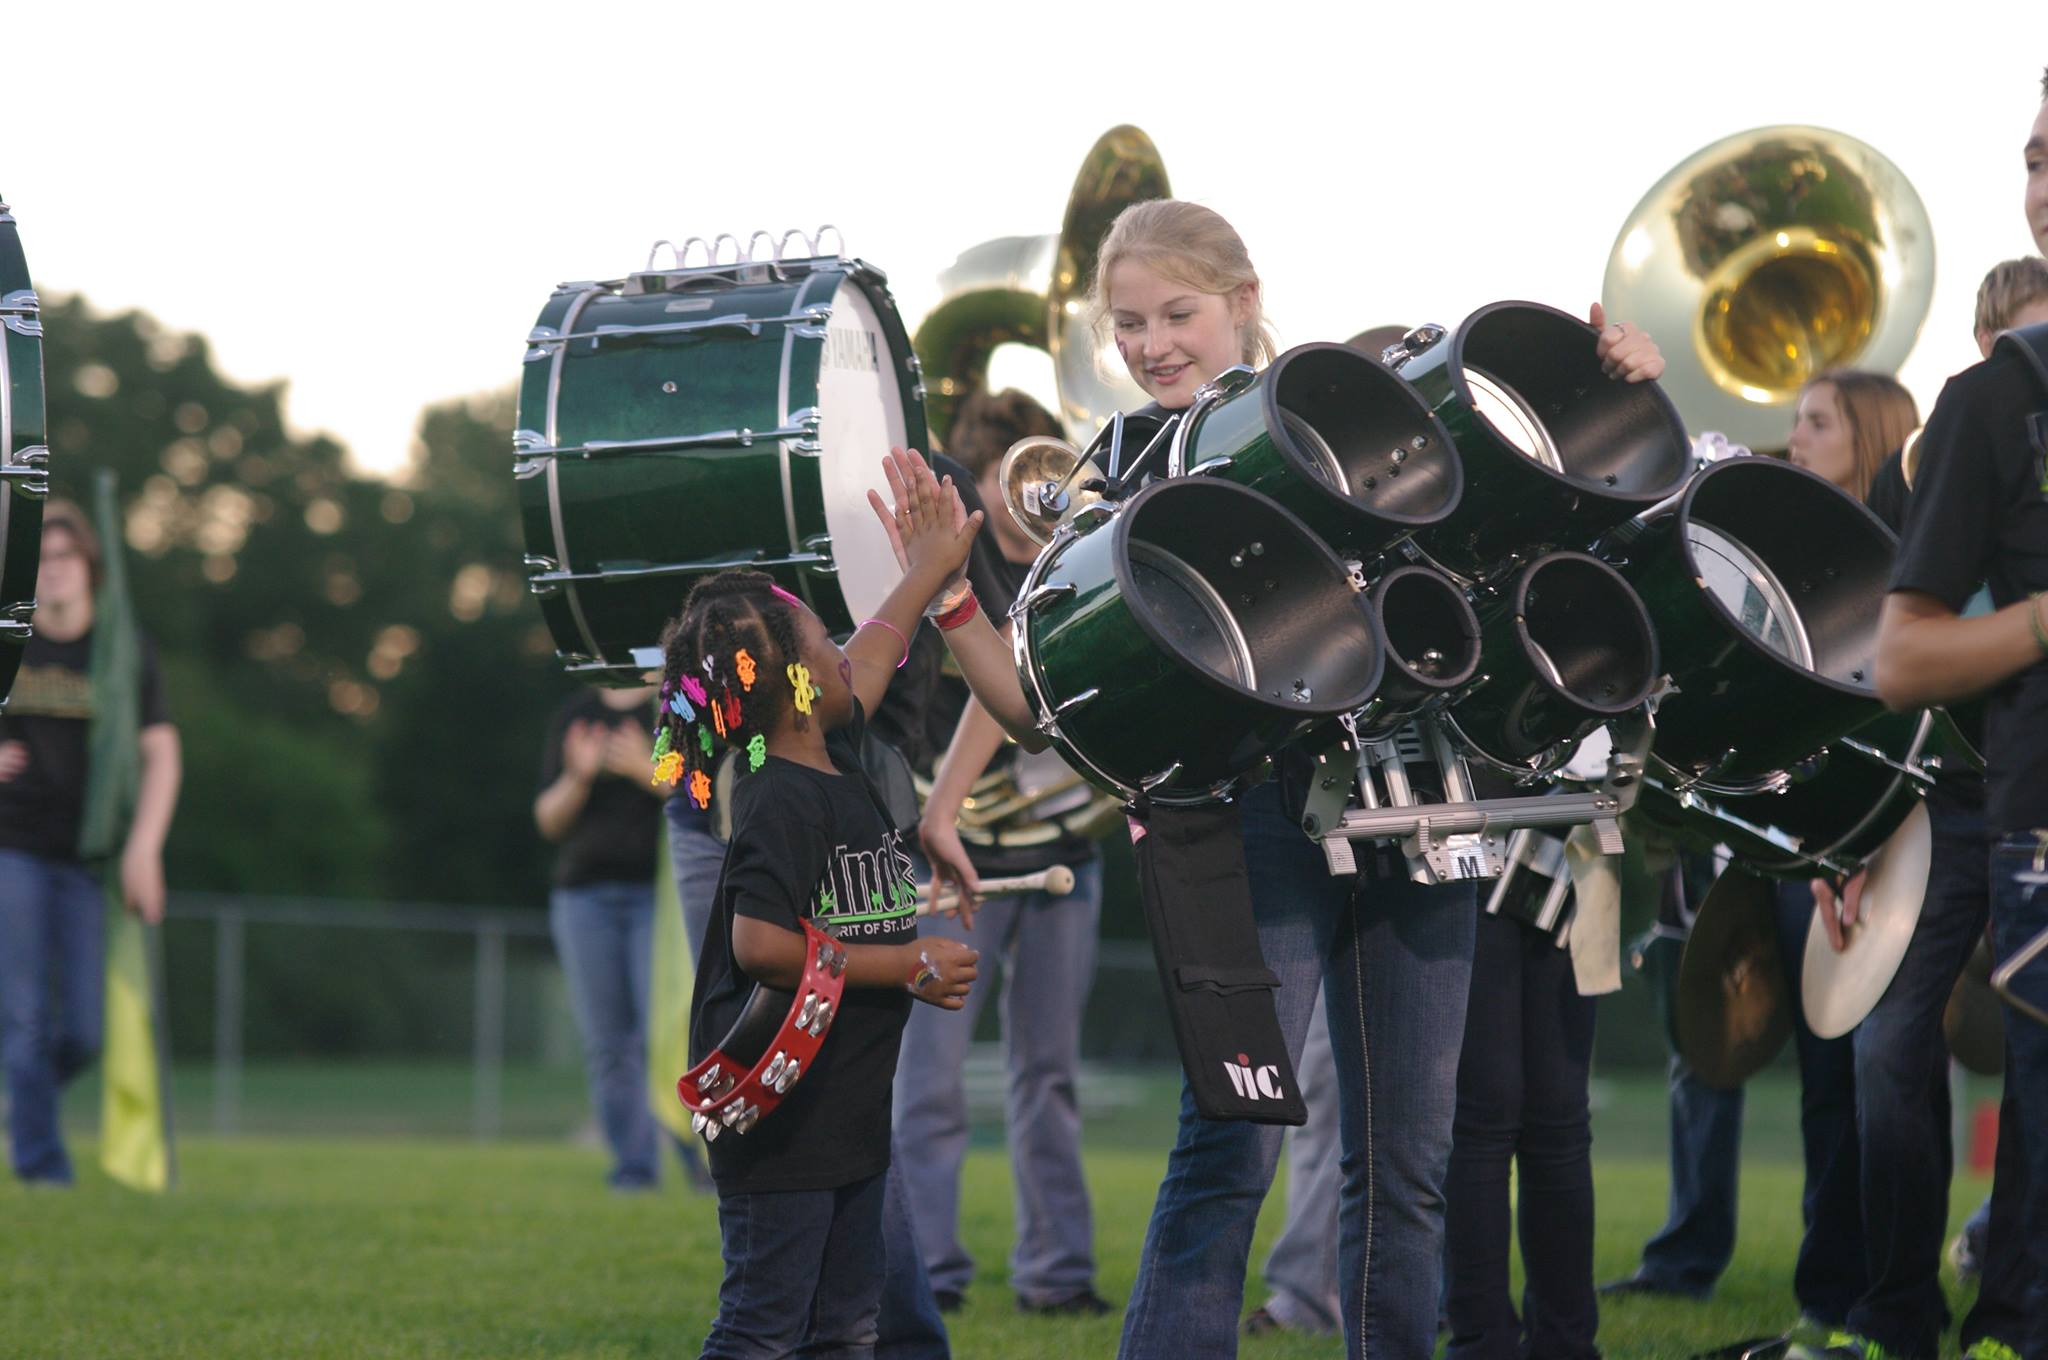 Marching band participants shine as stars on the field too!